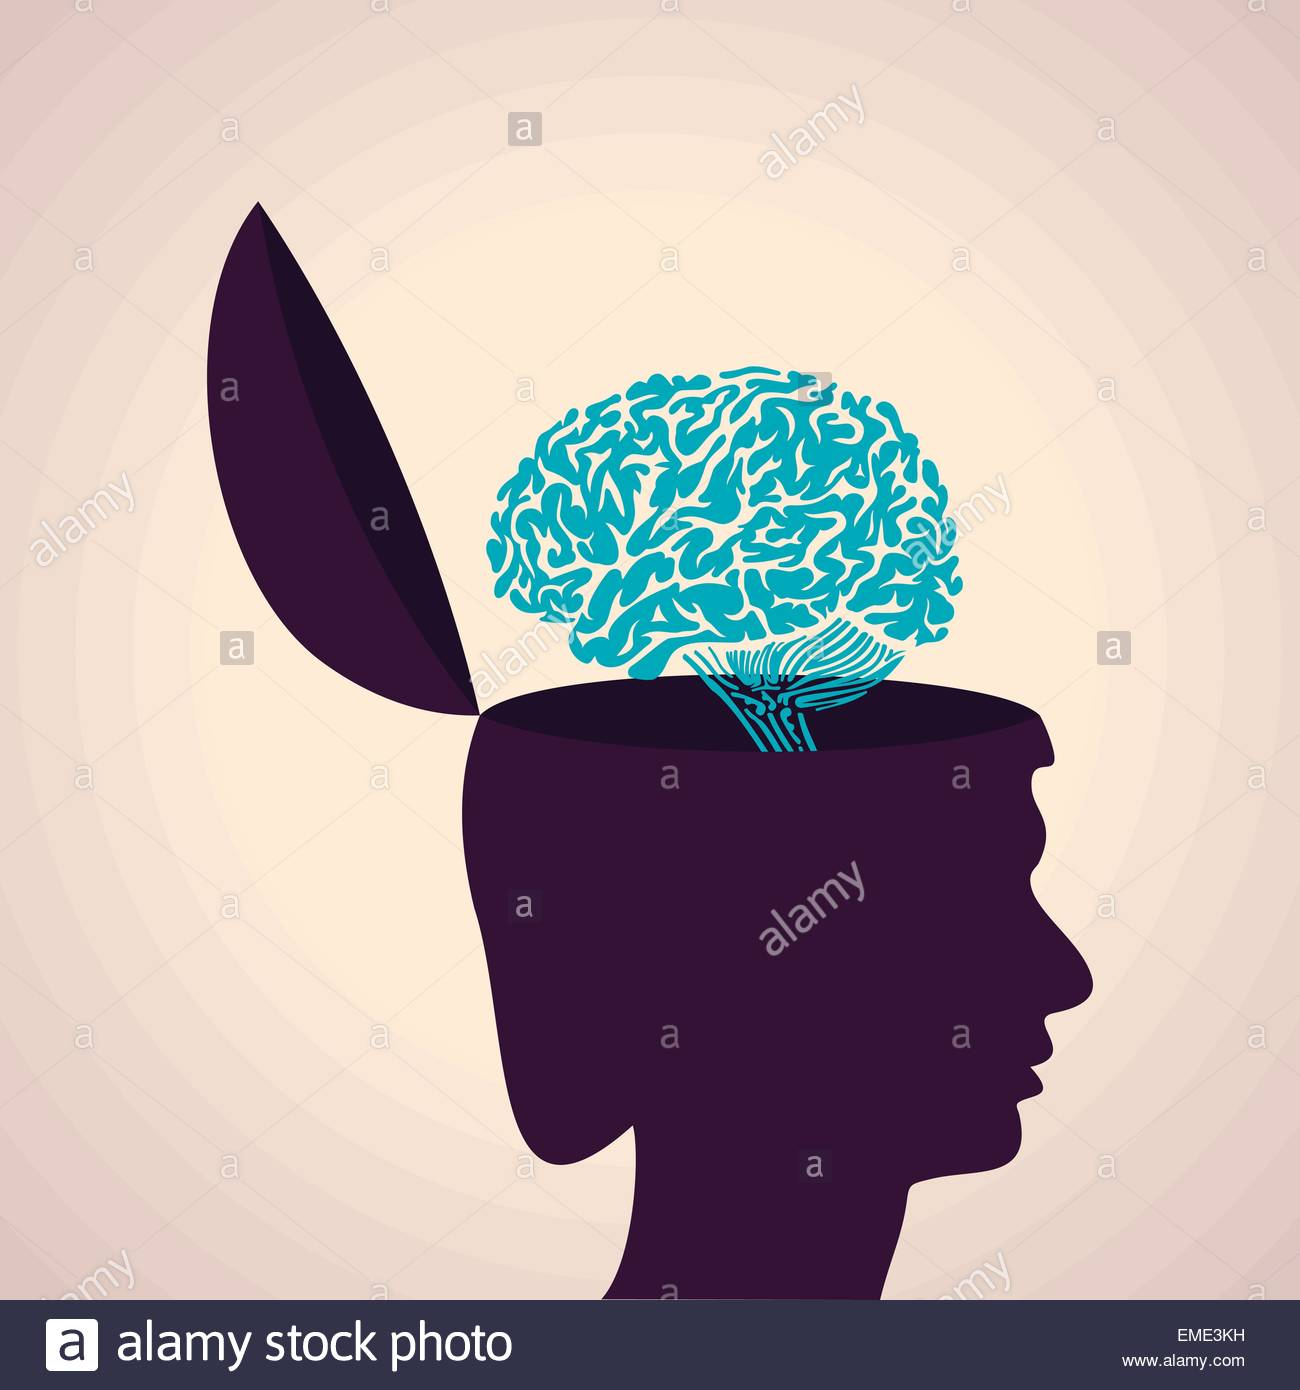 Illustration of thinking concept-Human head with brain - Stock Image